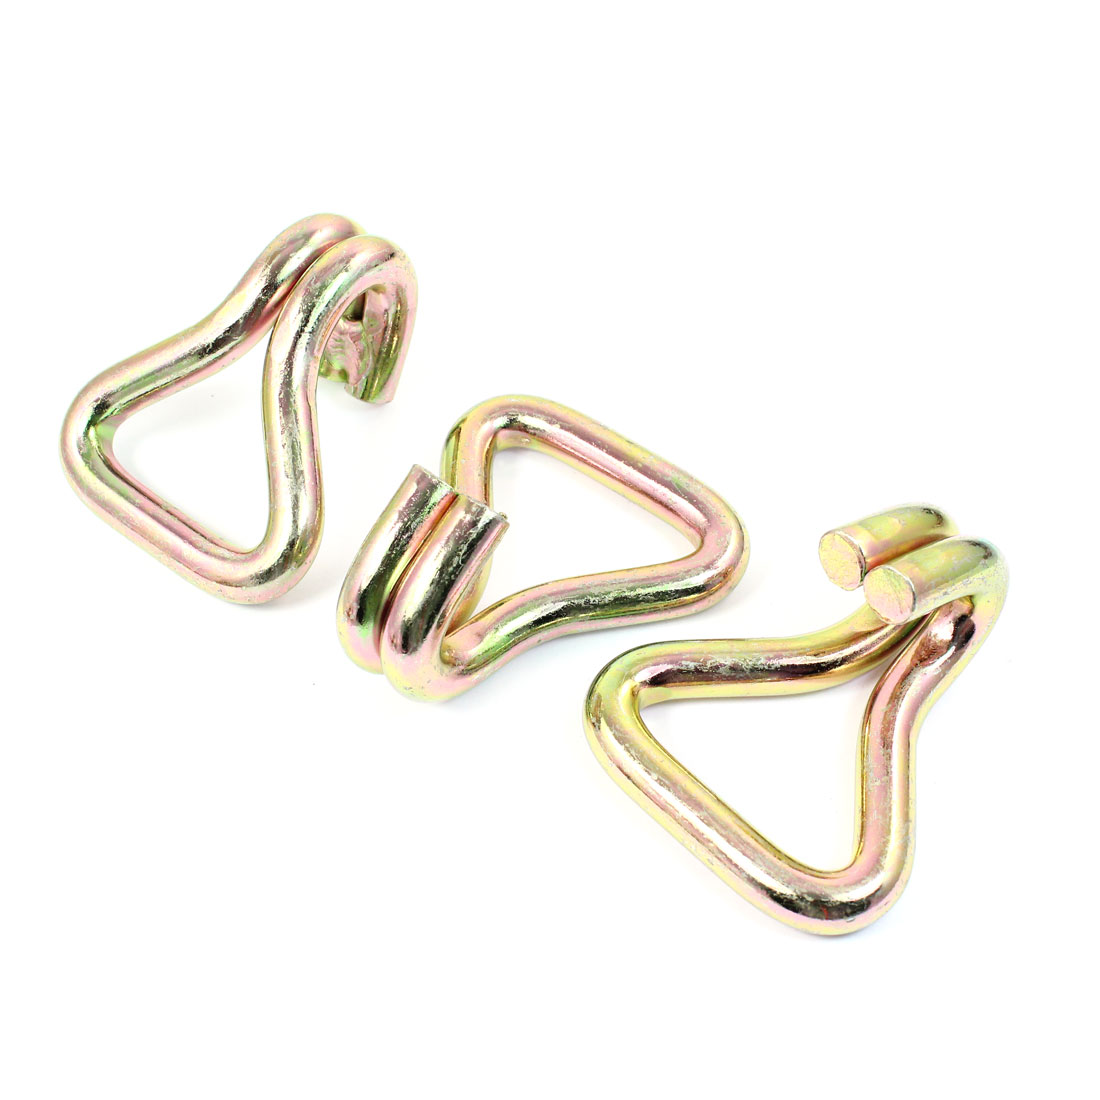 3PCS 50mm Bundling Webbing Bronze Tone Metal Double Fixed Eye Hooks